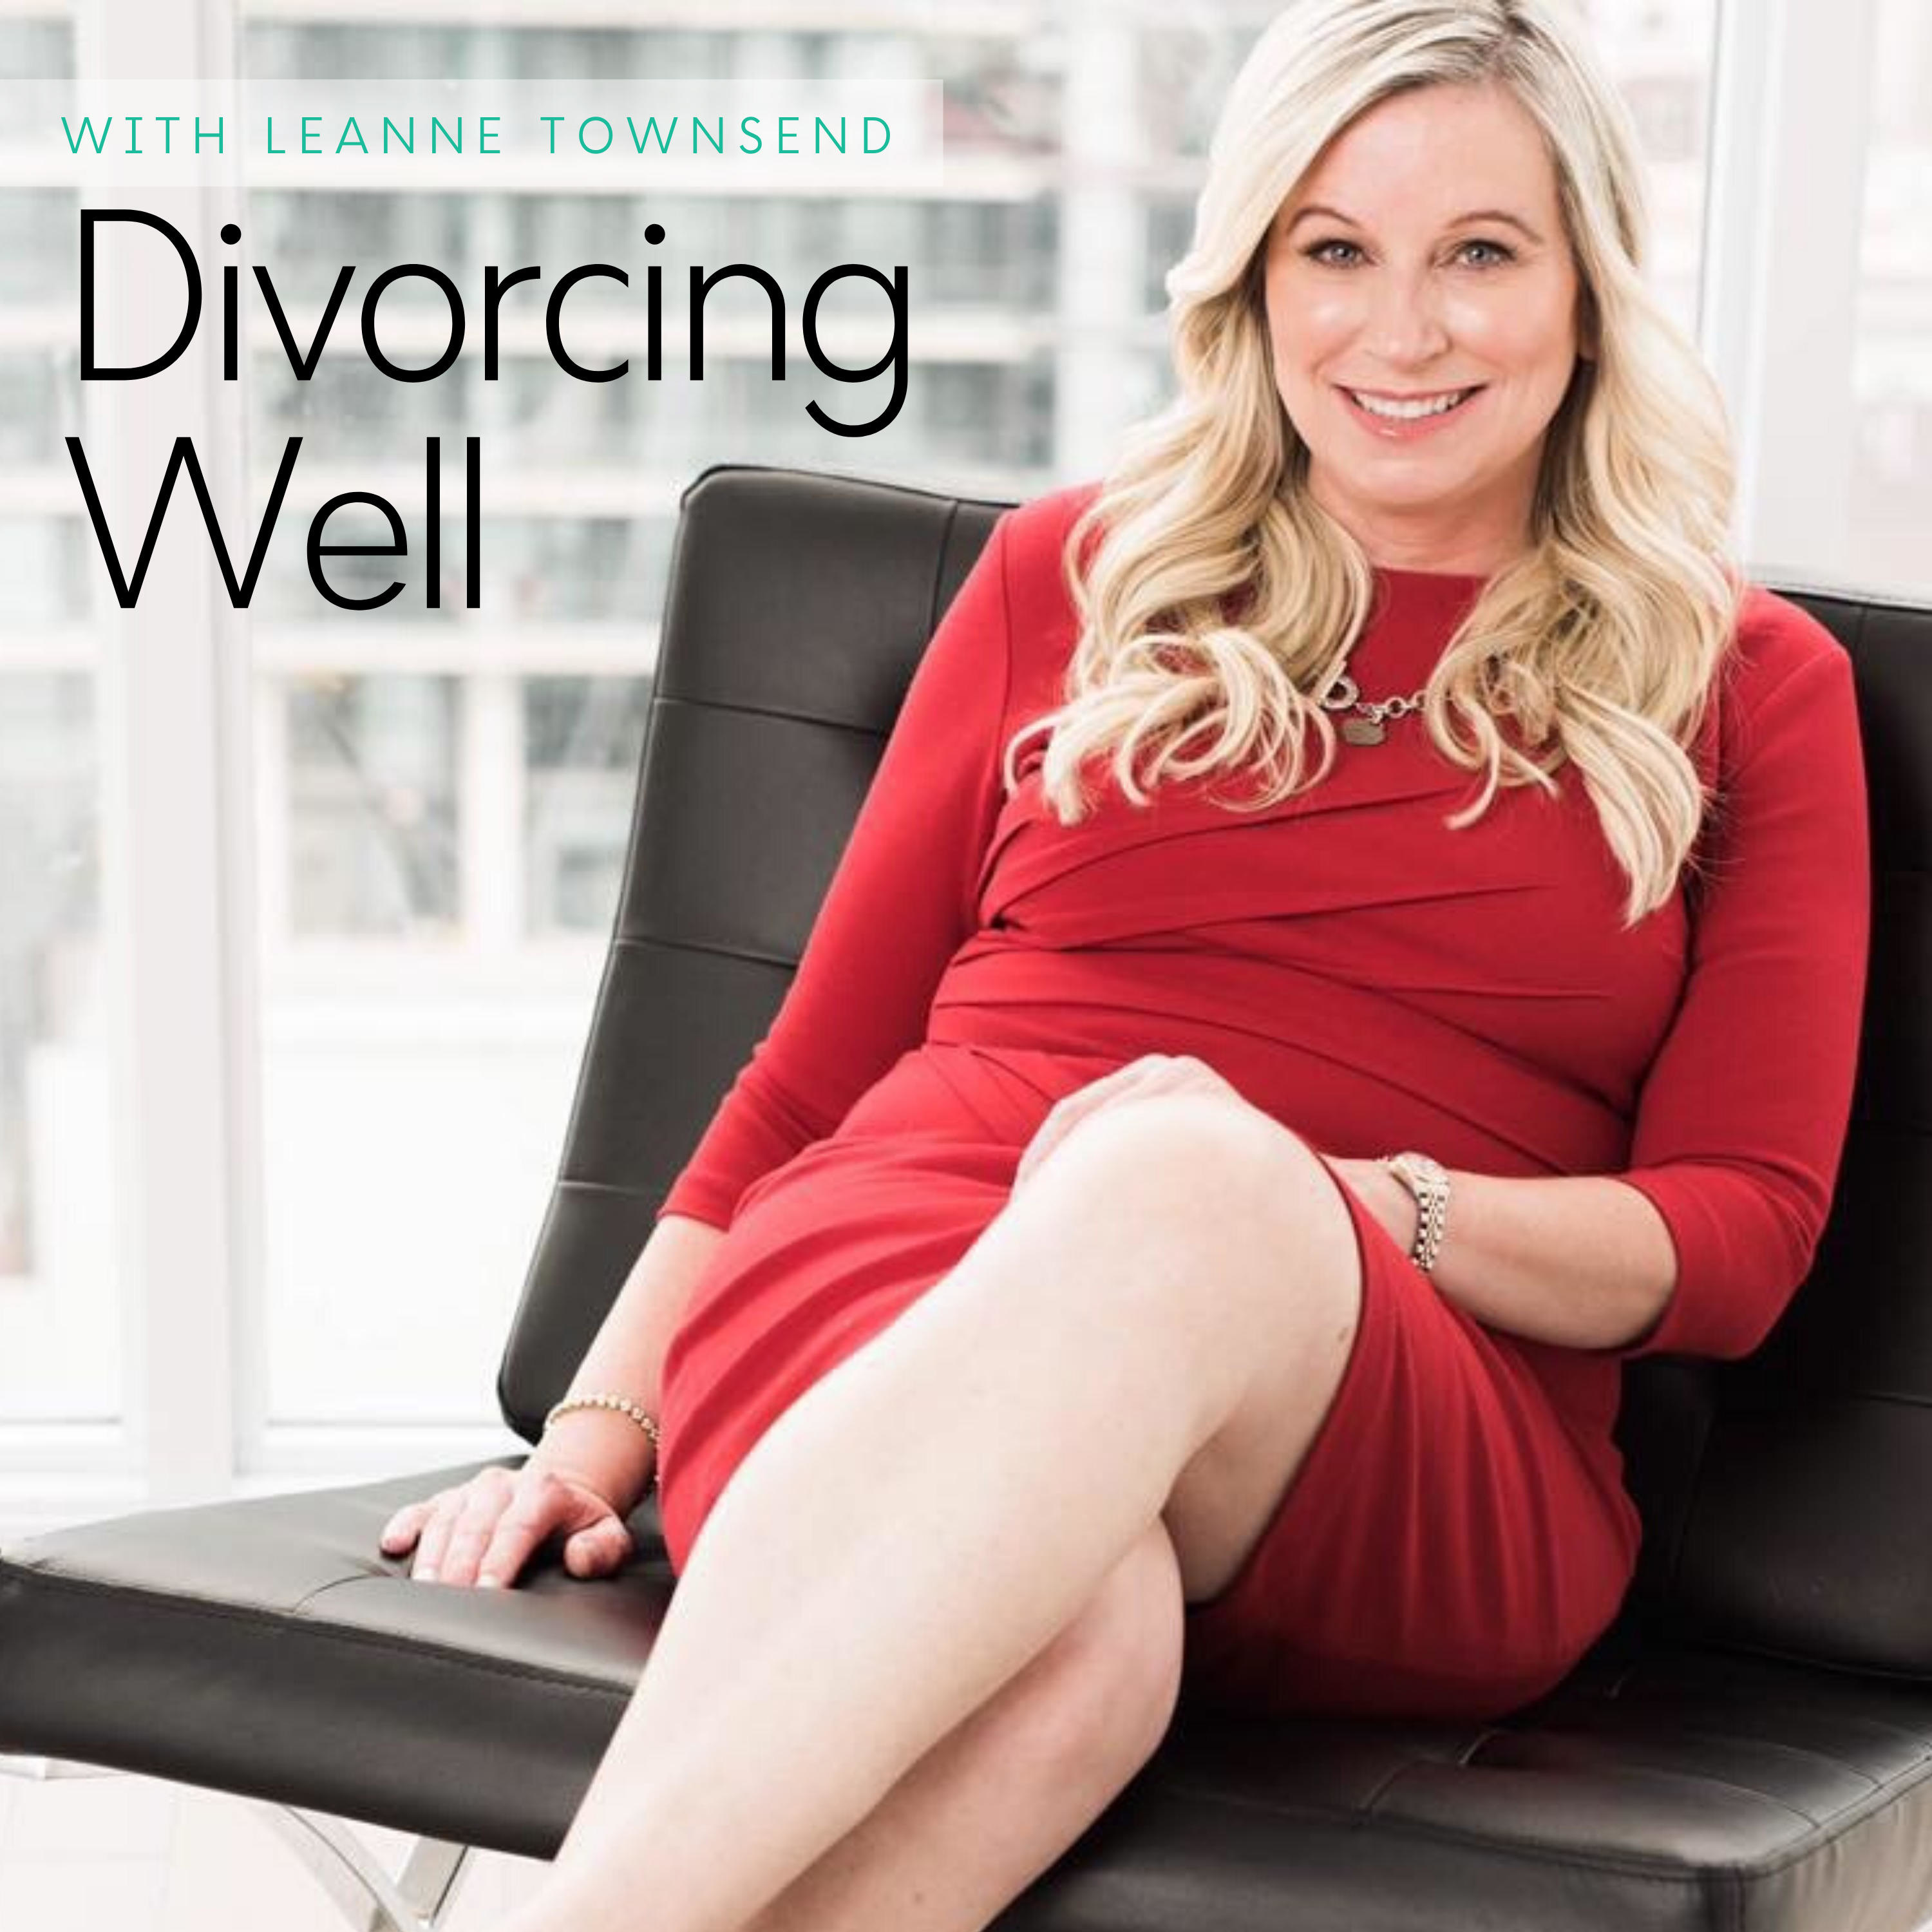 Divorcing Well - Divorce, COVID-19 and the Matrimonial Home with Anna Oliver